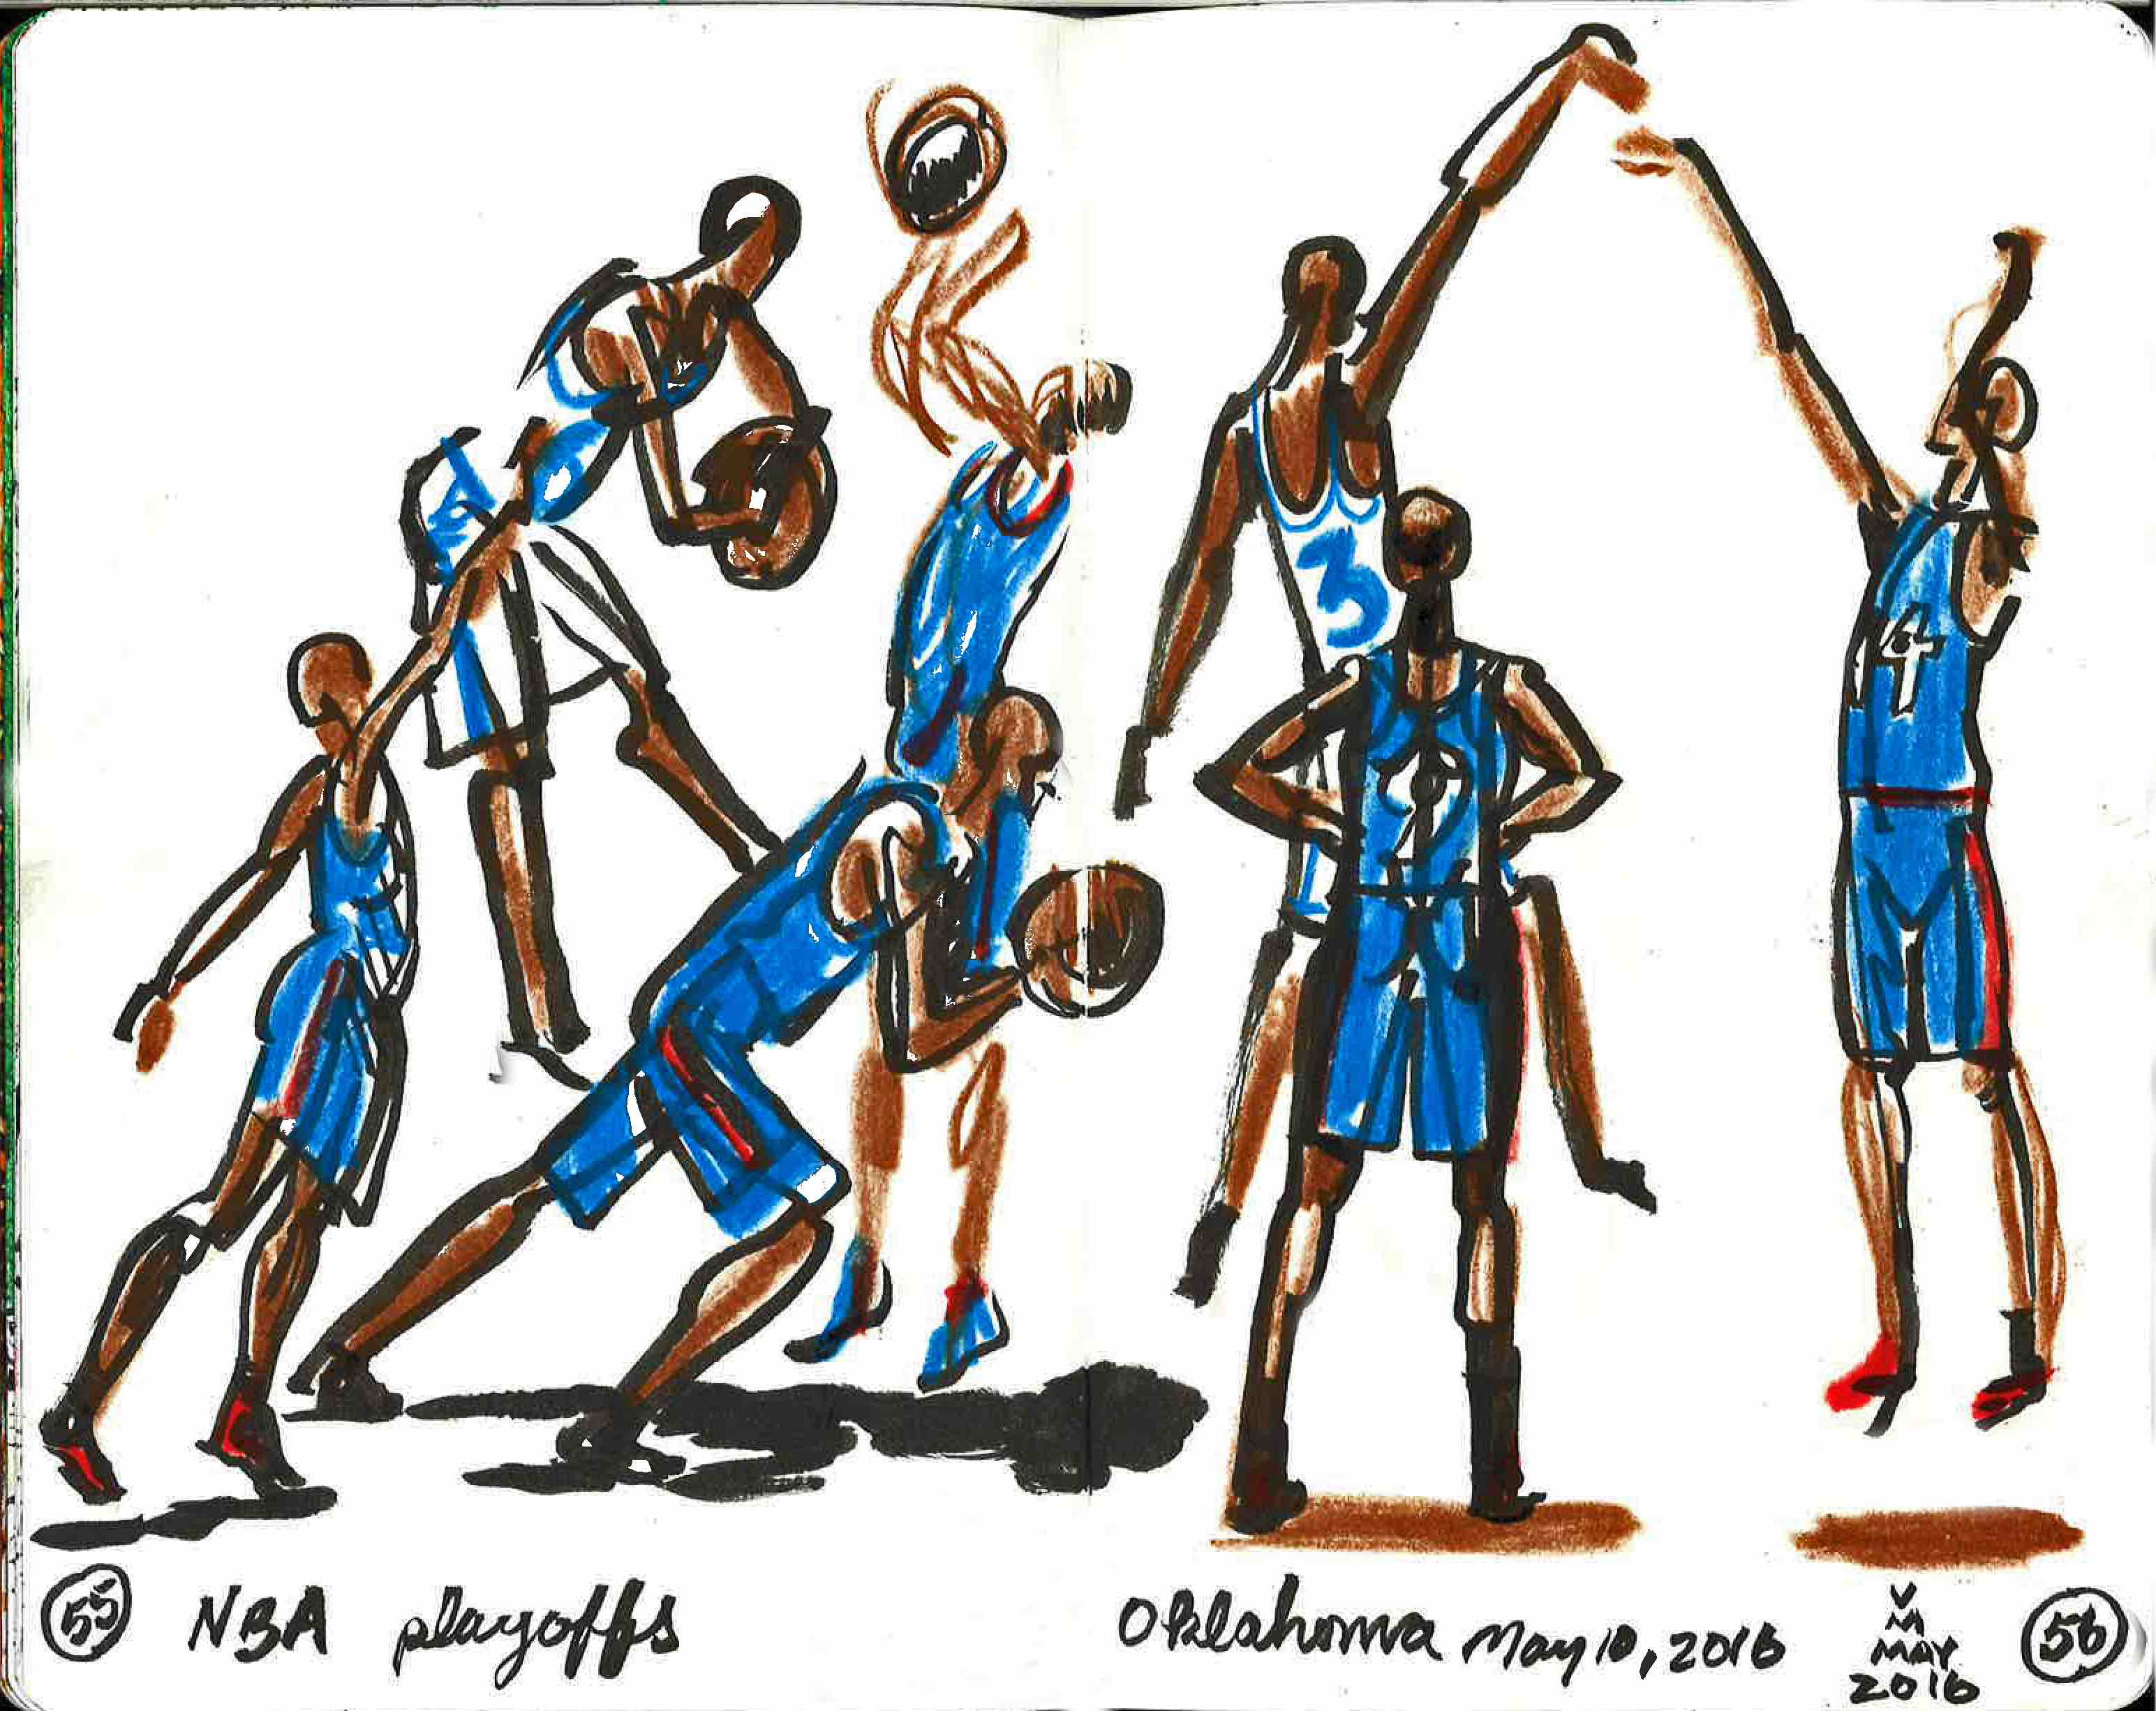 Watching real Athletes in action, Internet and Television are a great source, but don't freeze frame, try to draw from what you remember the action to be.